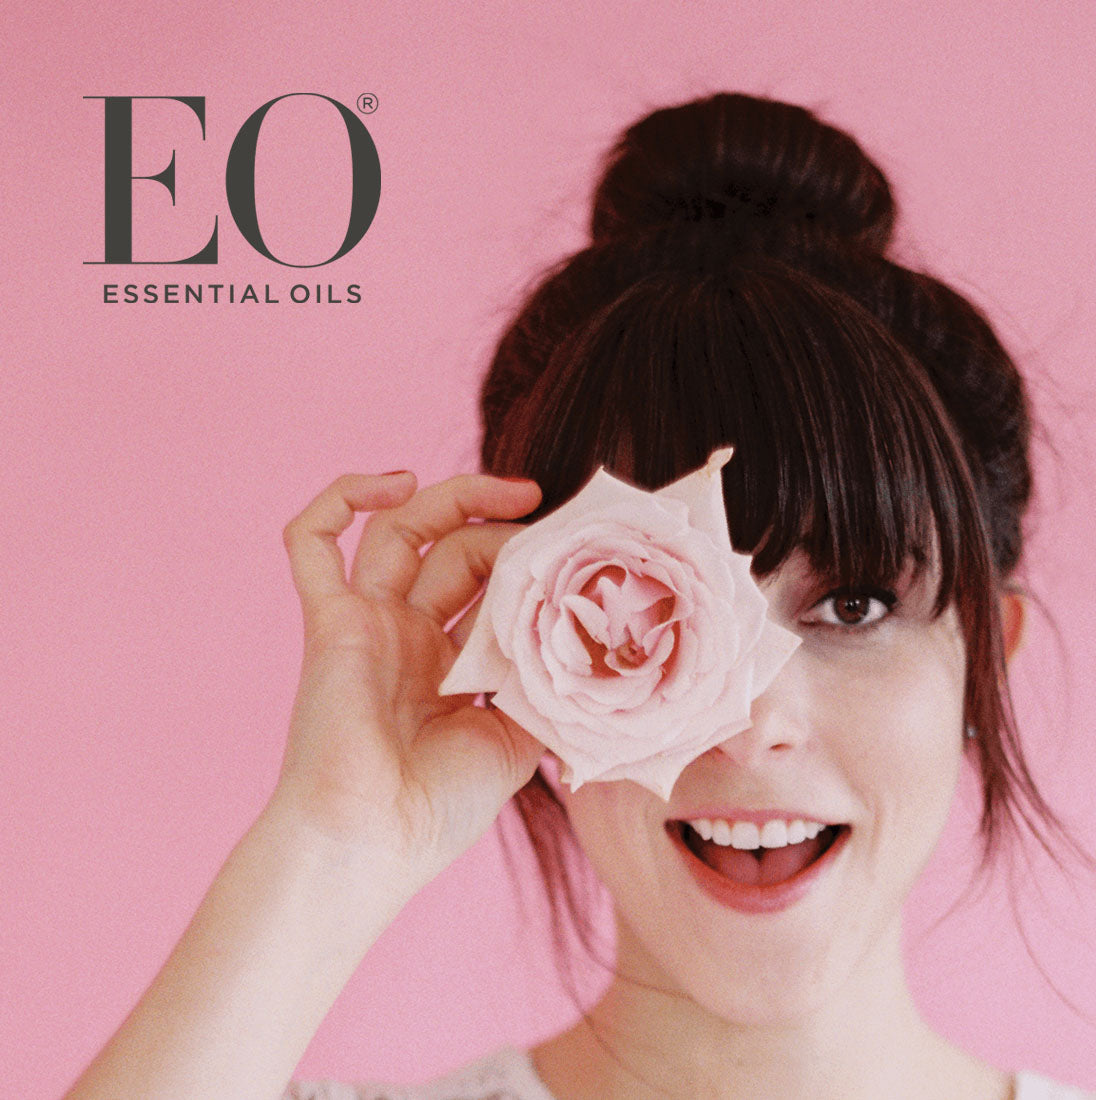 EO® body, skin, and hair care products